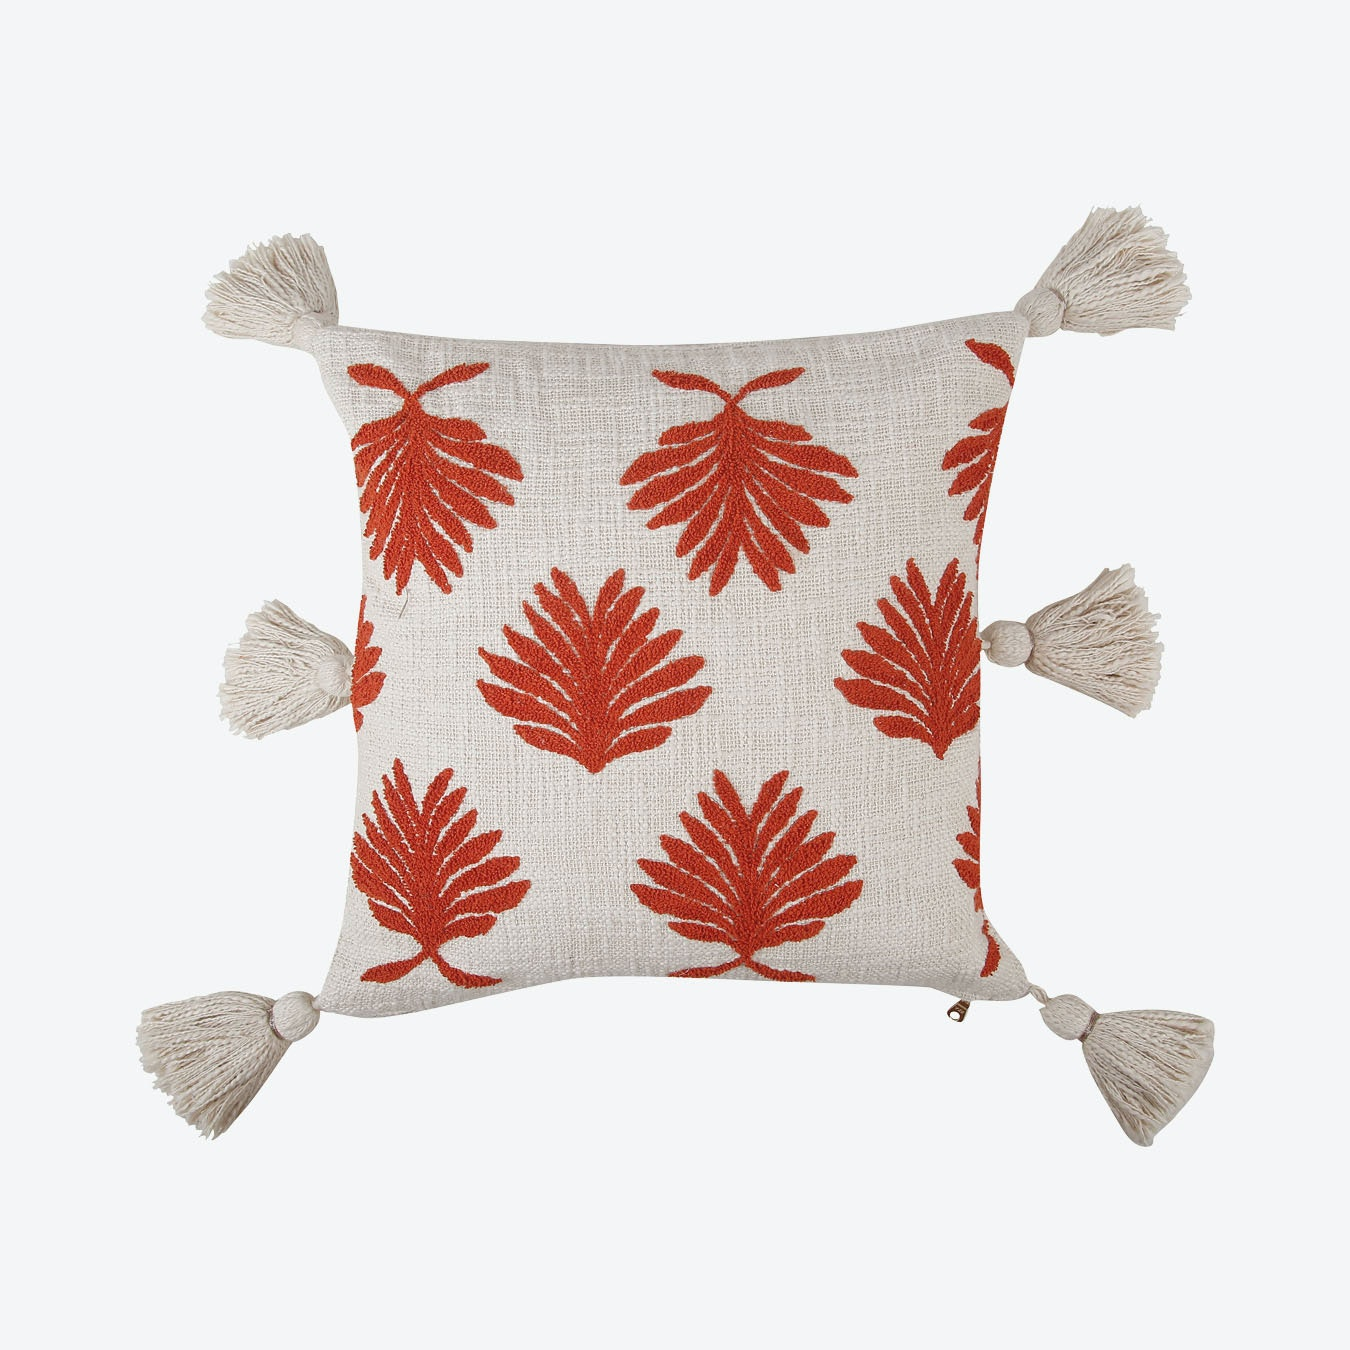 Hand Embroidered Petal Pillow Cover Burnt Orange By Casa Amarosa Fy